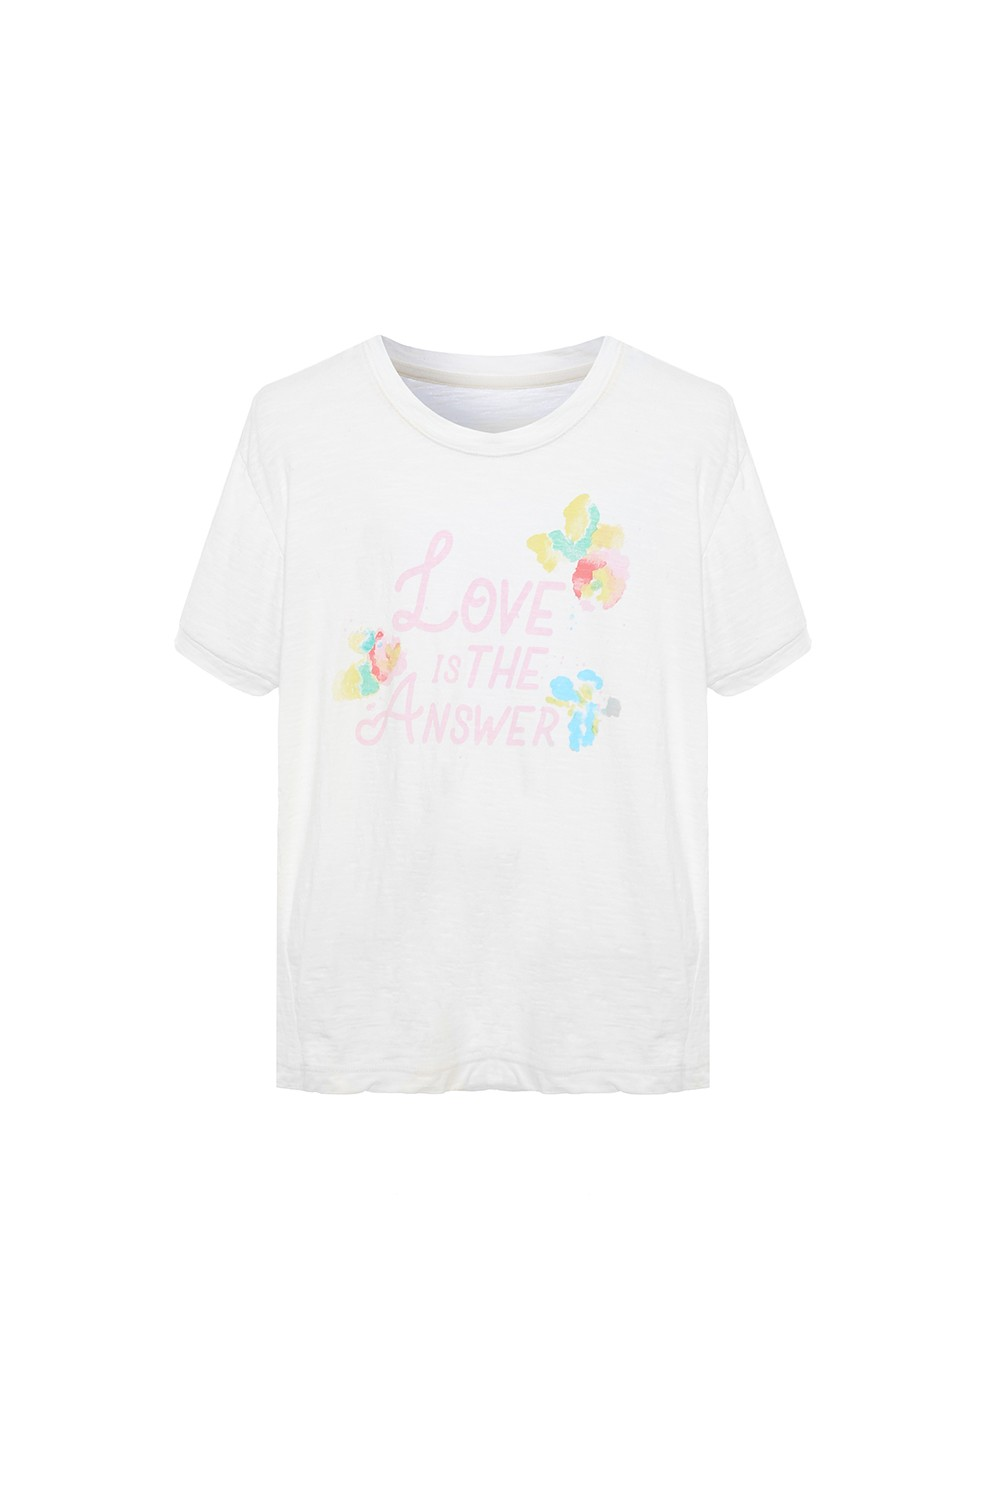 CAMISETA LOVE IS THE ANSWER KIDS I21